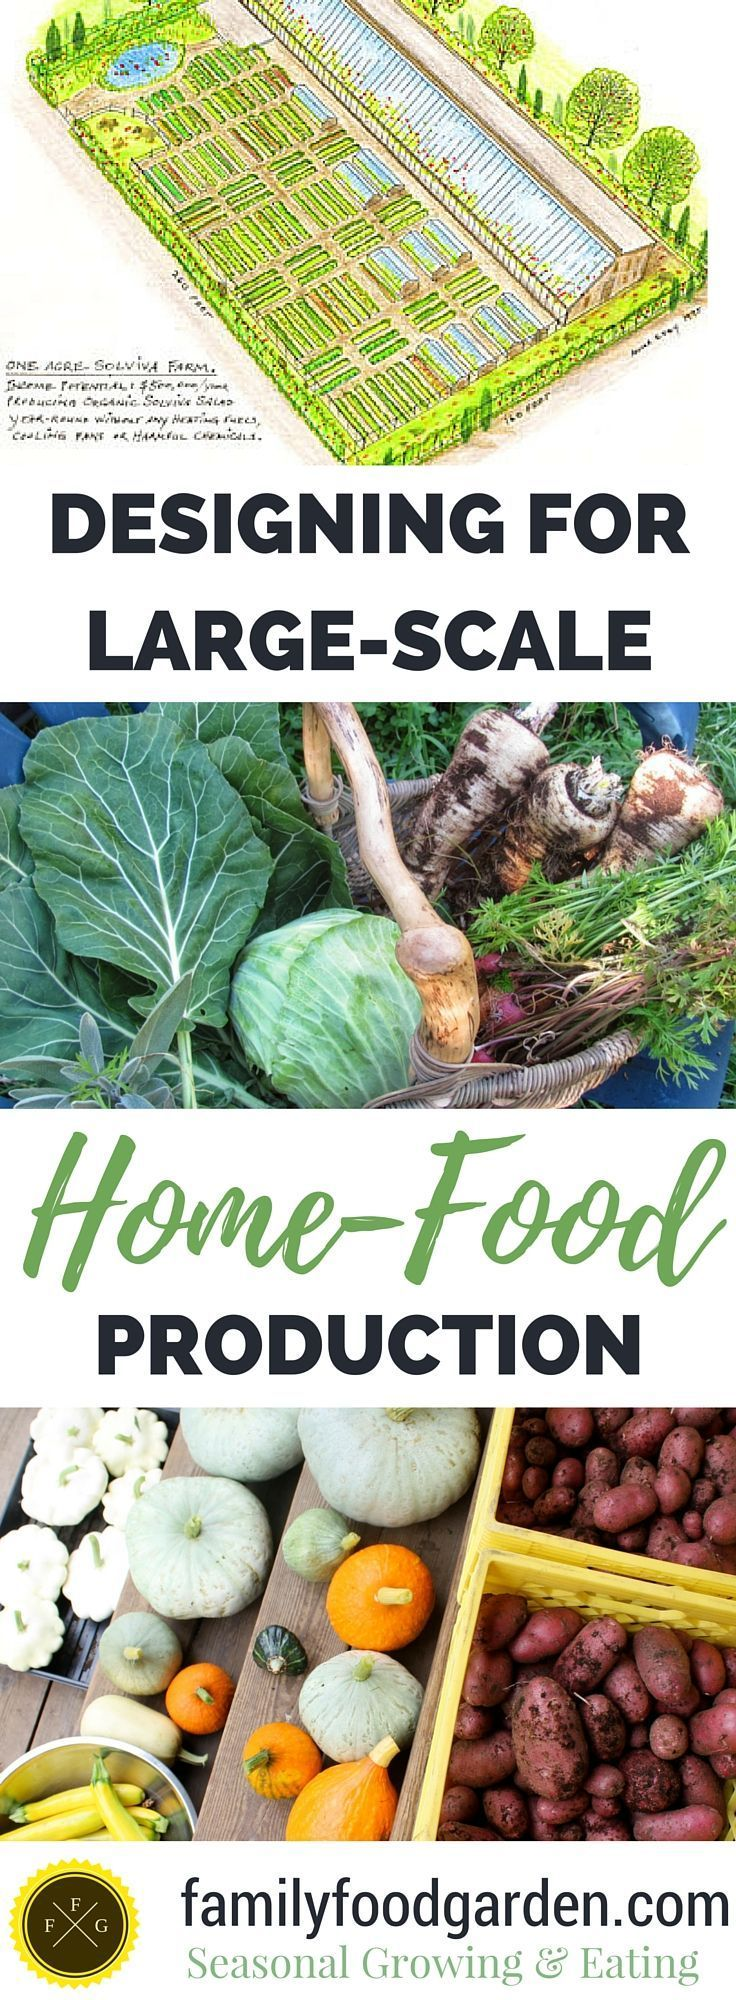 Achieving large-scale food production by growing all of your fruits & vegetables on 1 acre #hydroponicgardening